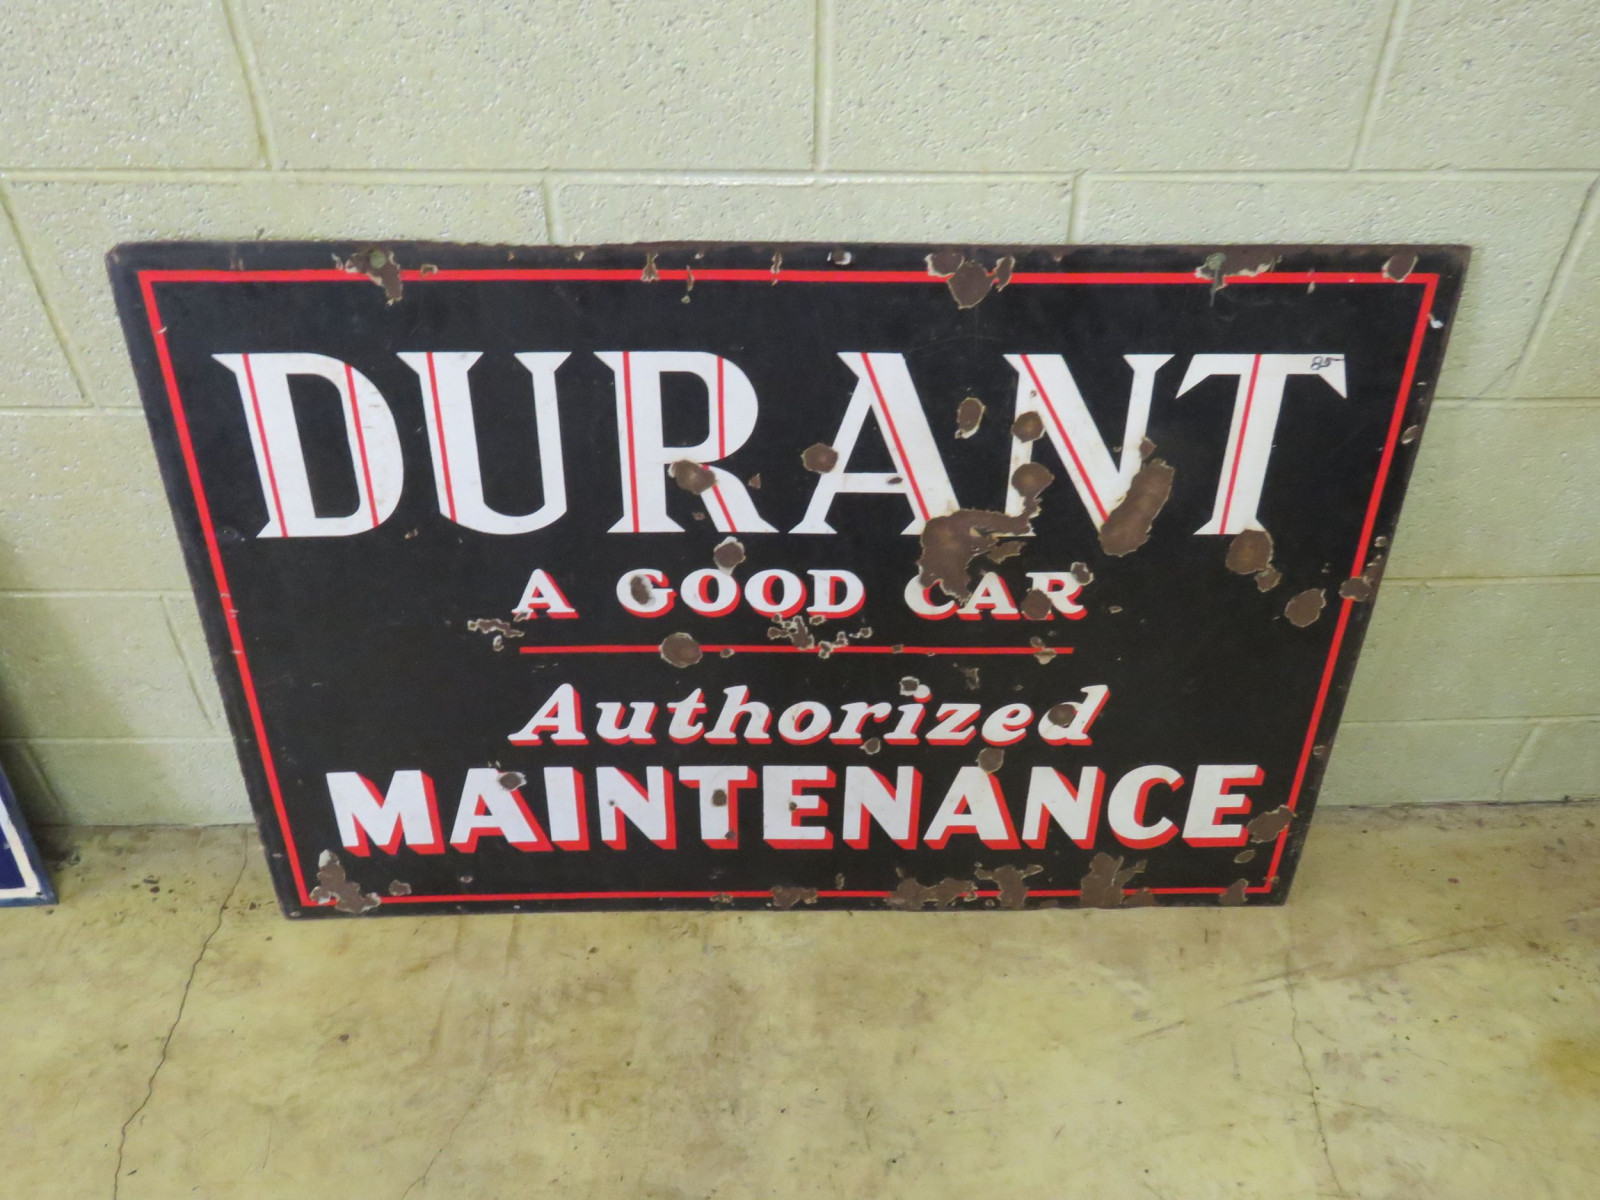 Durant Authorized Maintenance Porcelain Sign - Image 2